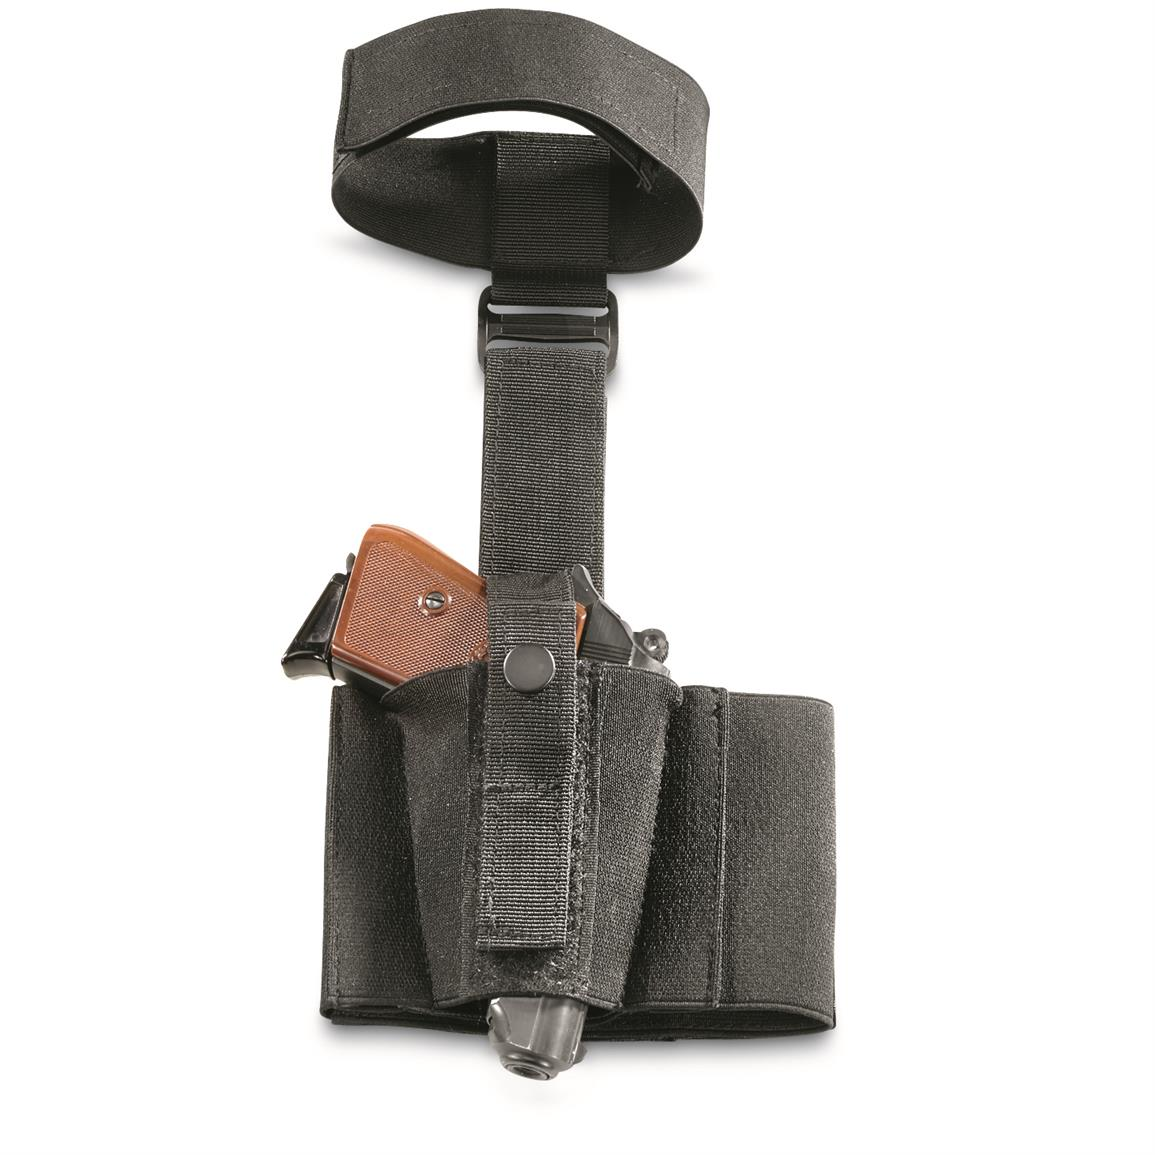 Rugged nylon with adjustable grip-strip security